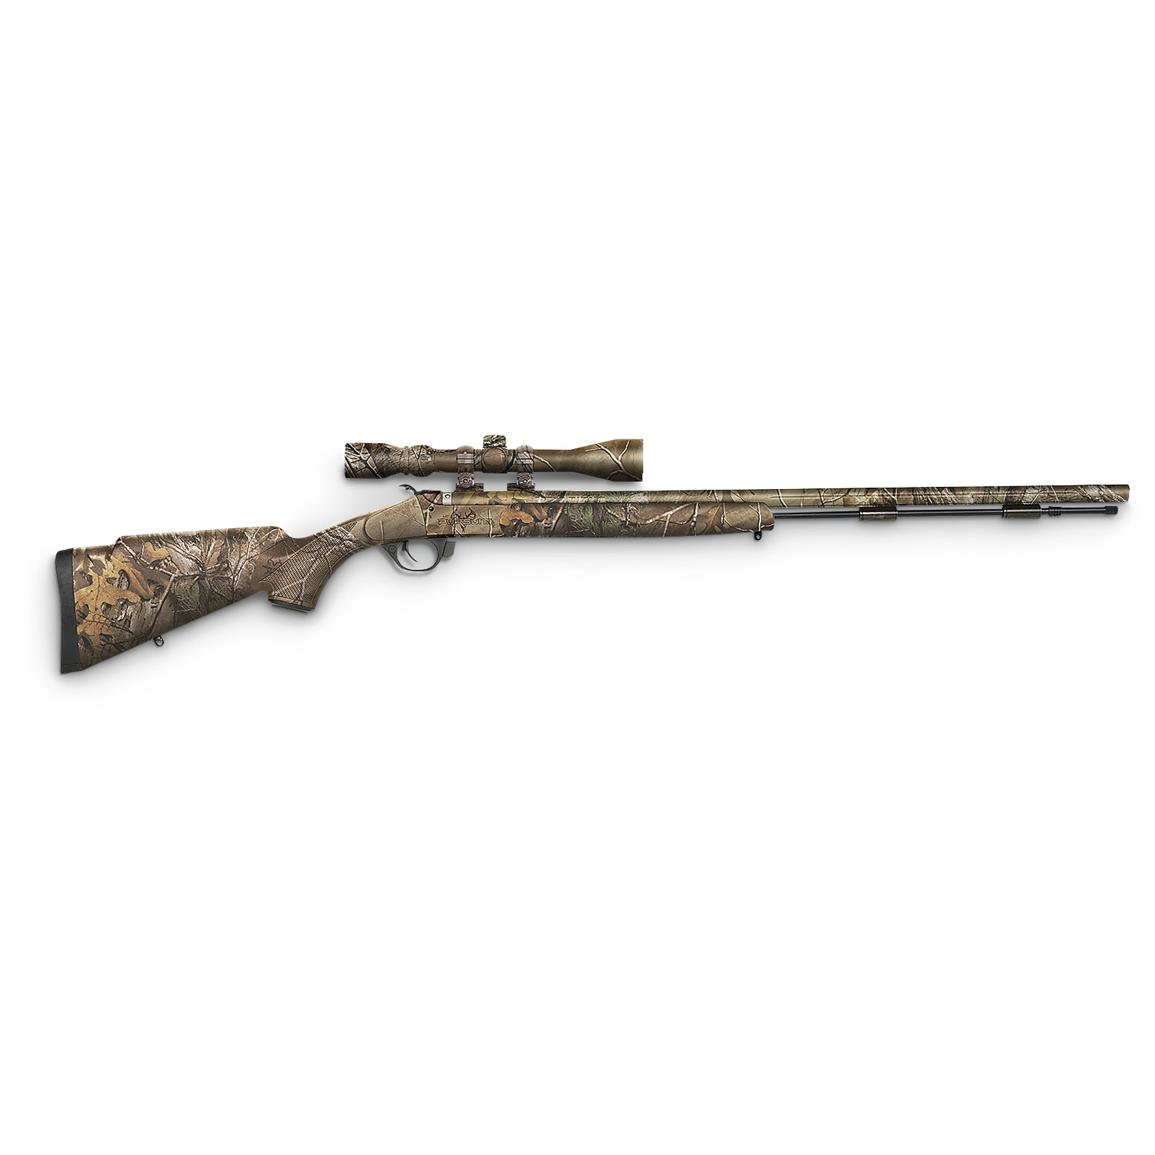 Traditions Pursuit G4 Ultralight .50 Caliber Black Powder Rifle with 3-9x40mm Scope, Full Realtree Xtra Camo / Cerakote